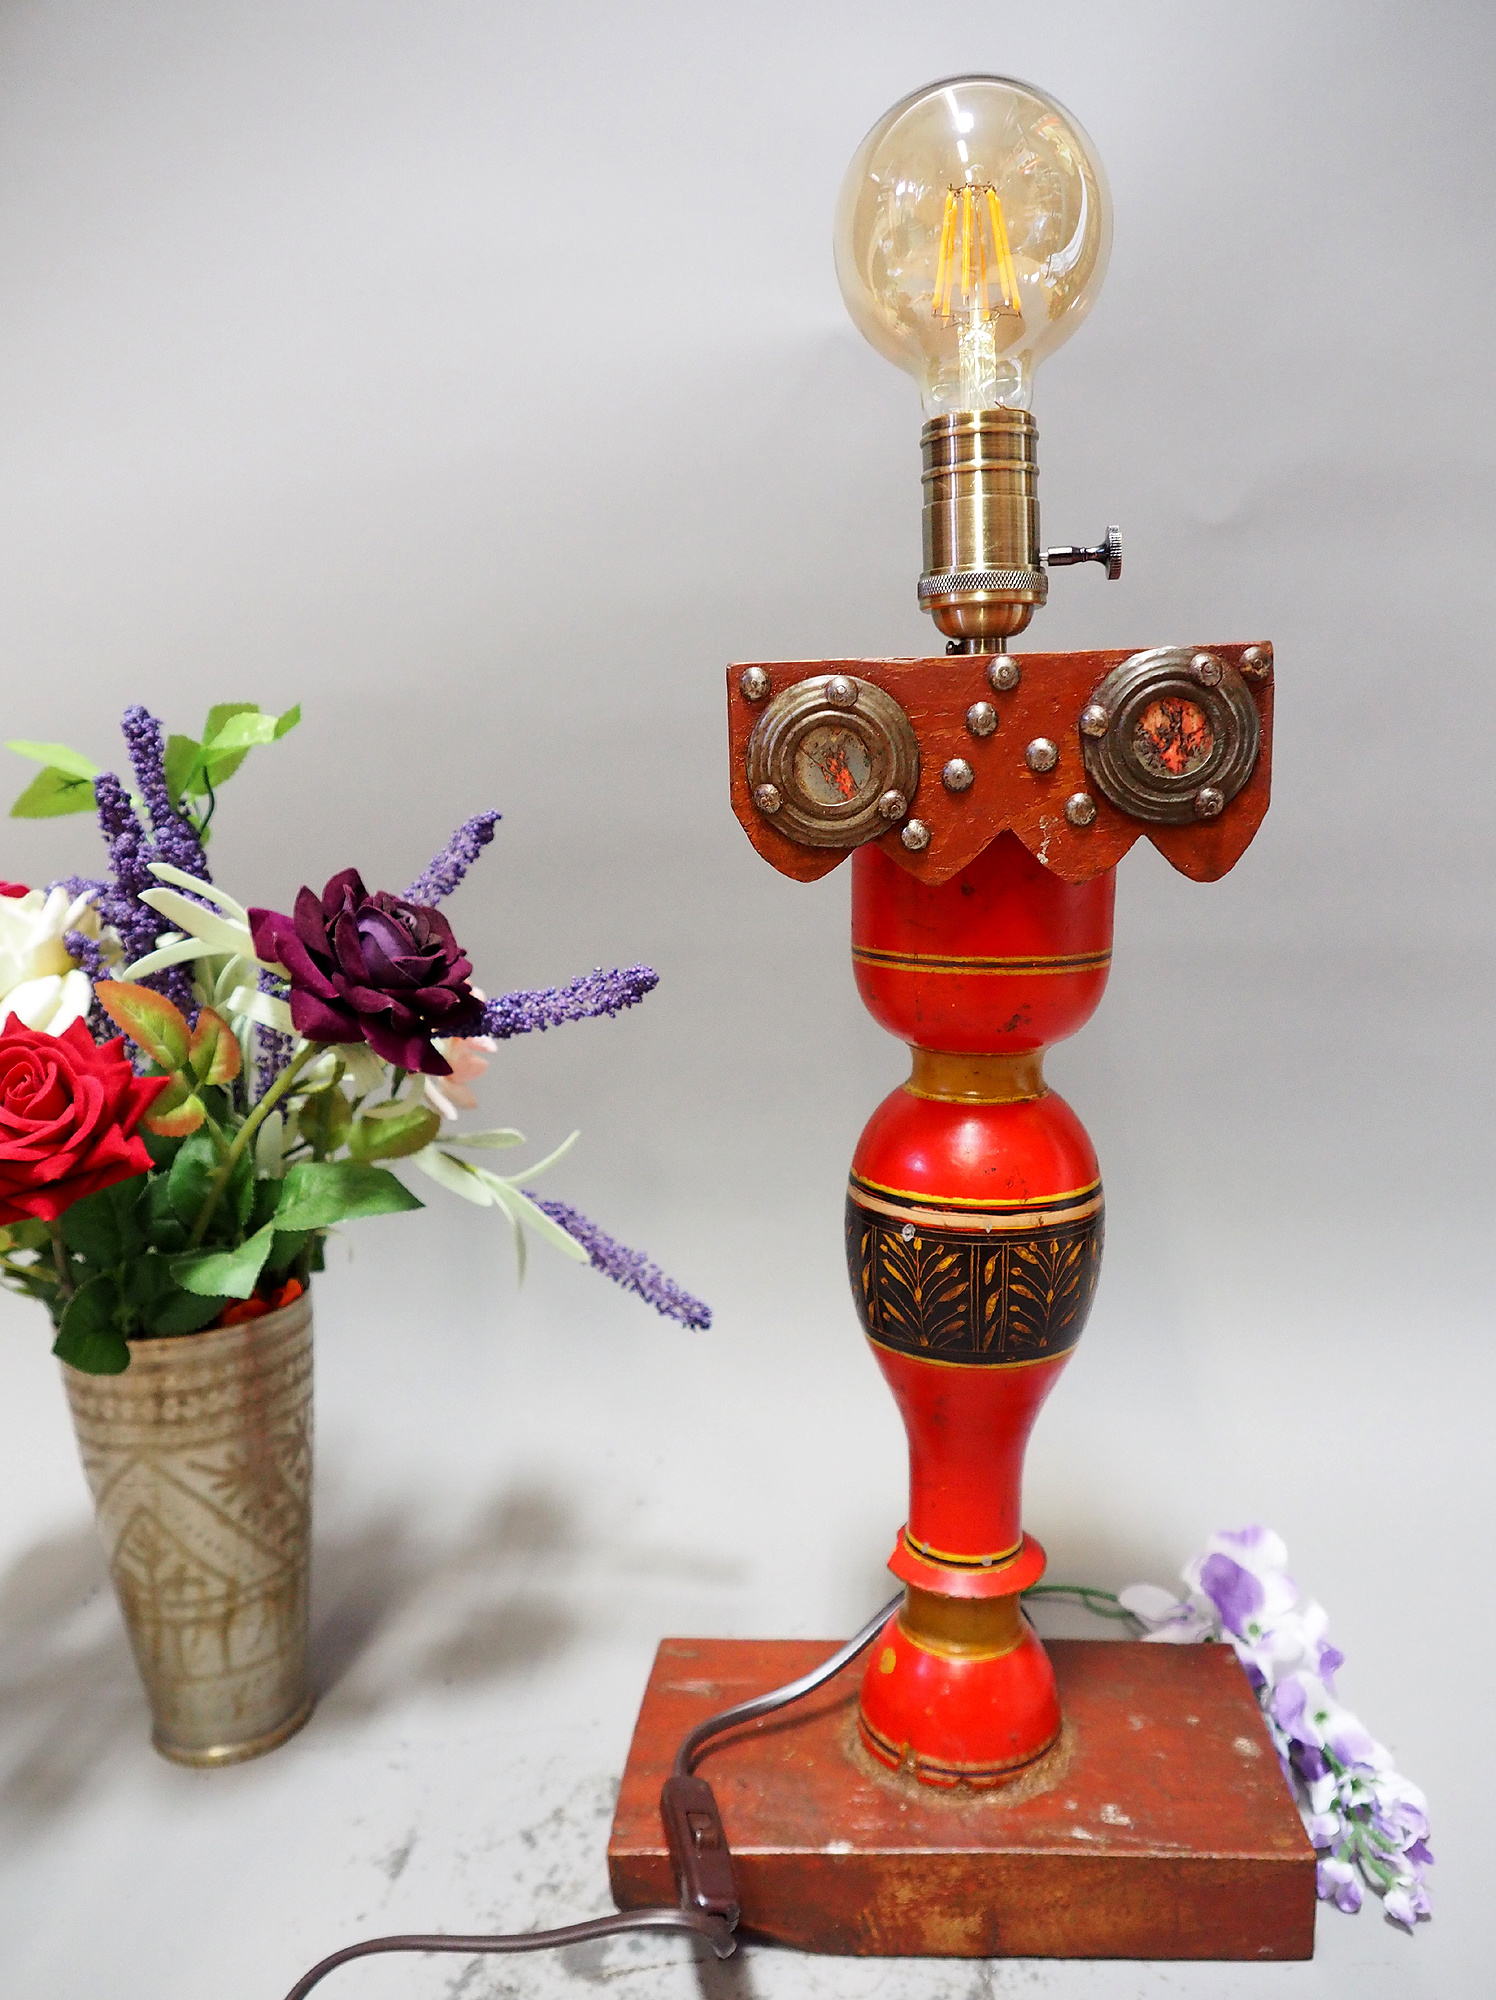 Antique handpainted stunning Vintage Lacquerware wooden Table Lamp with Vintage light fitting from Afghanistan / Pakistan No:21/3